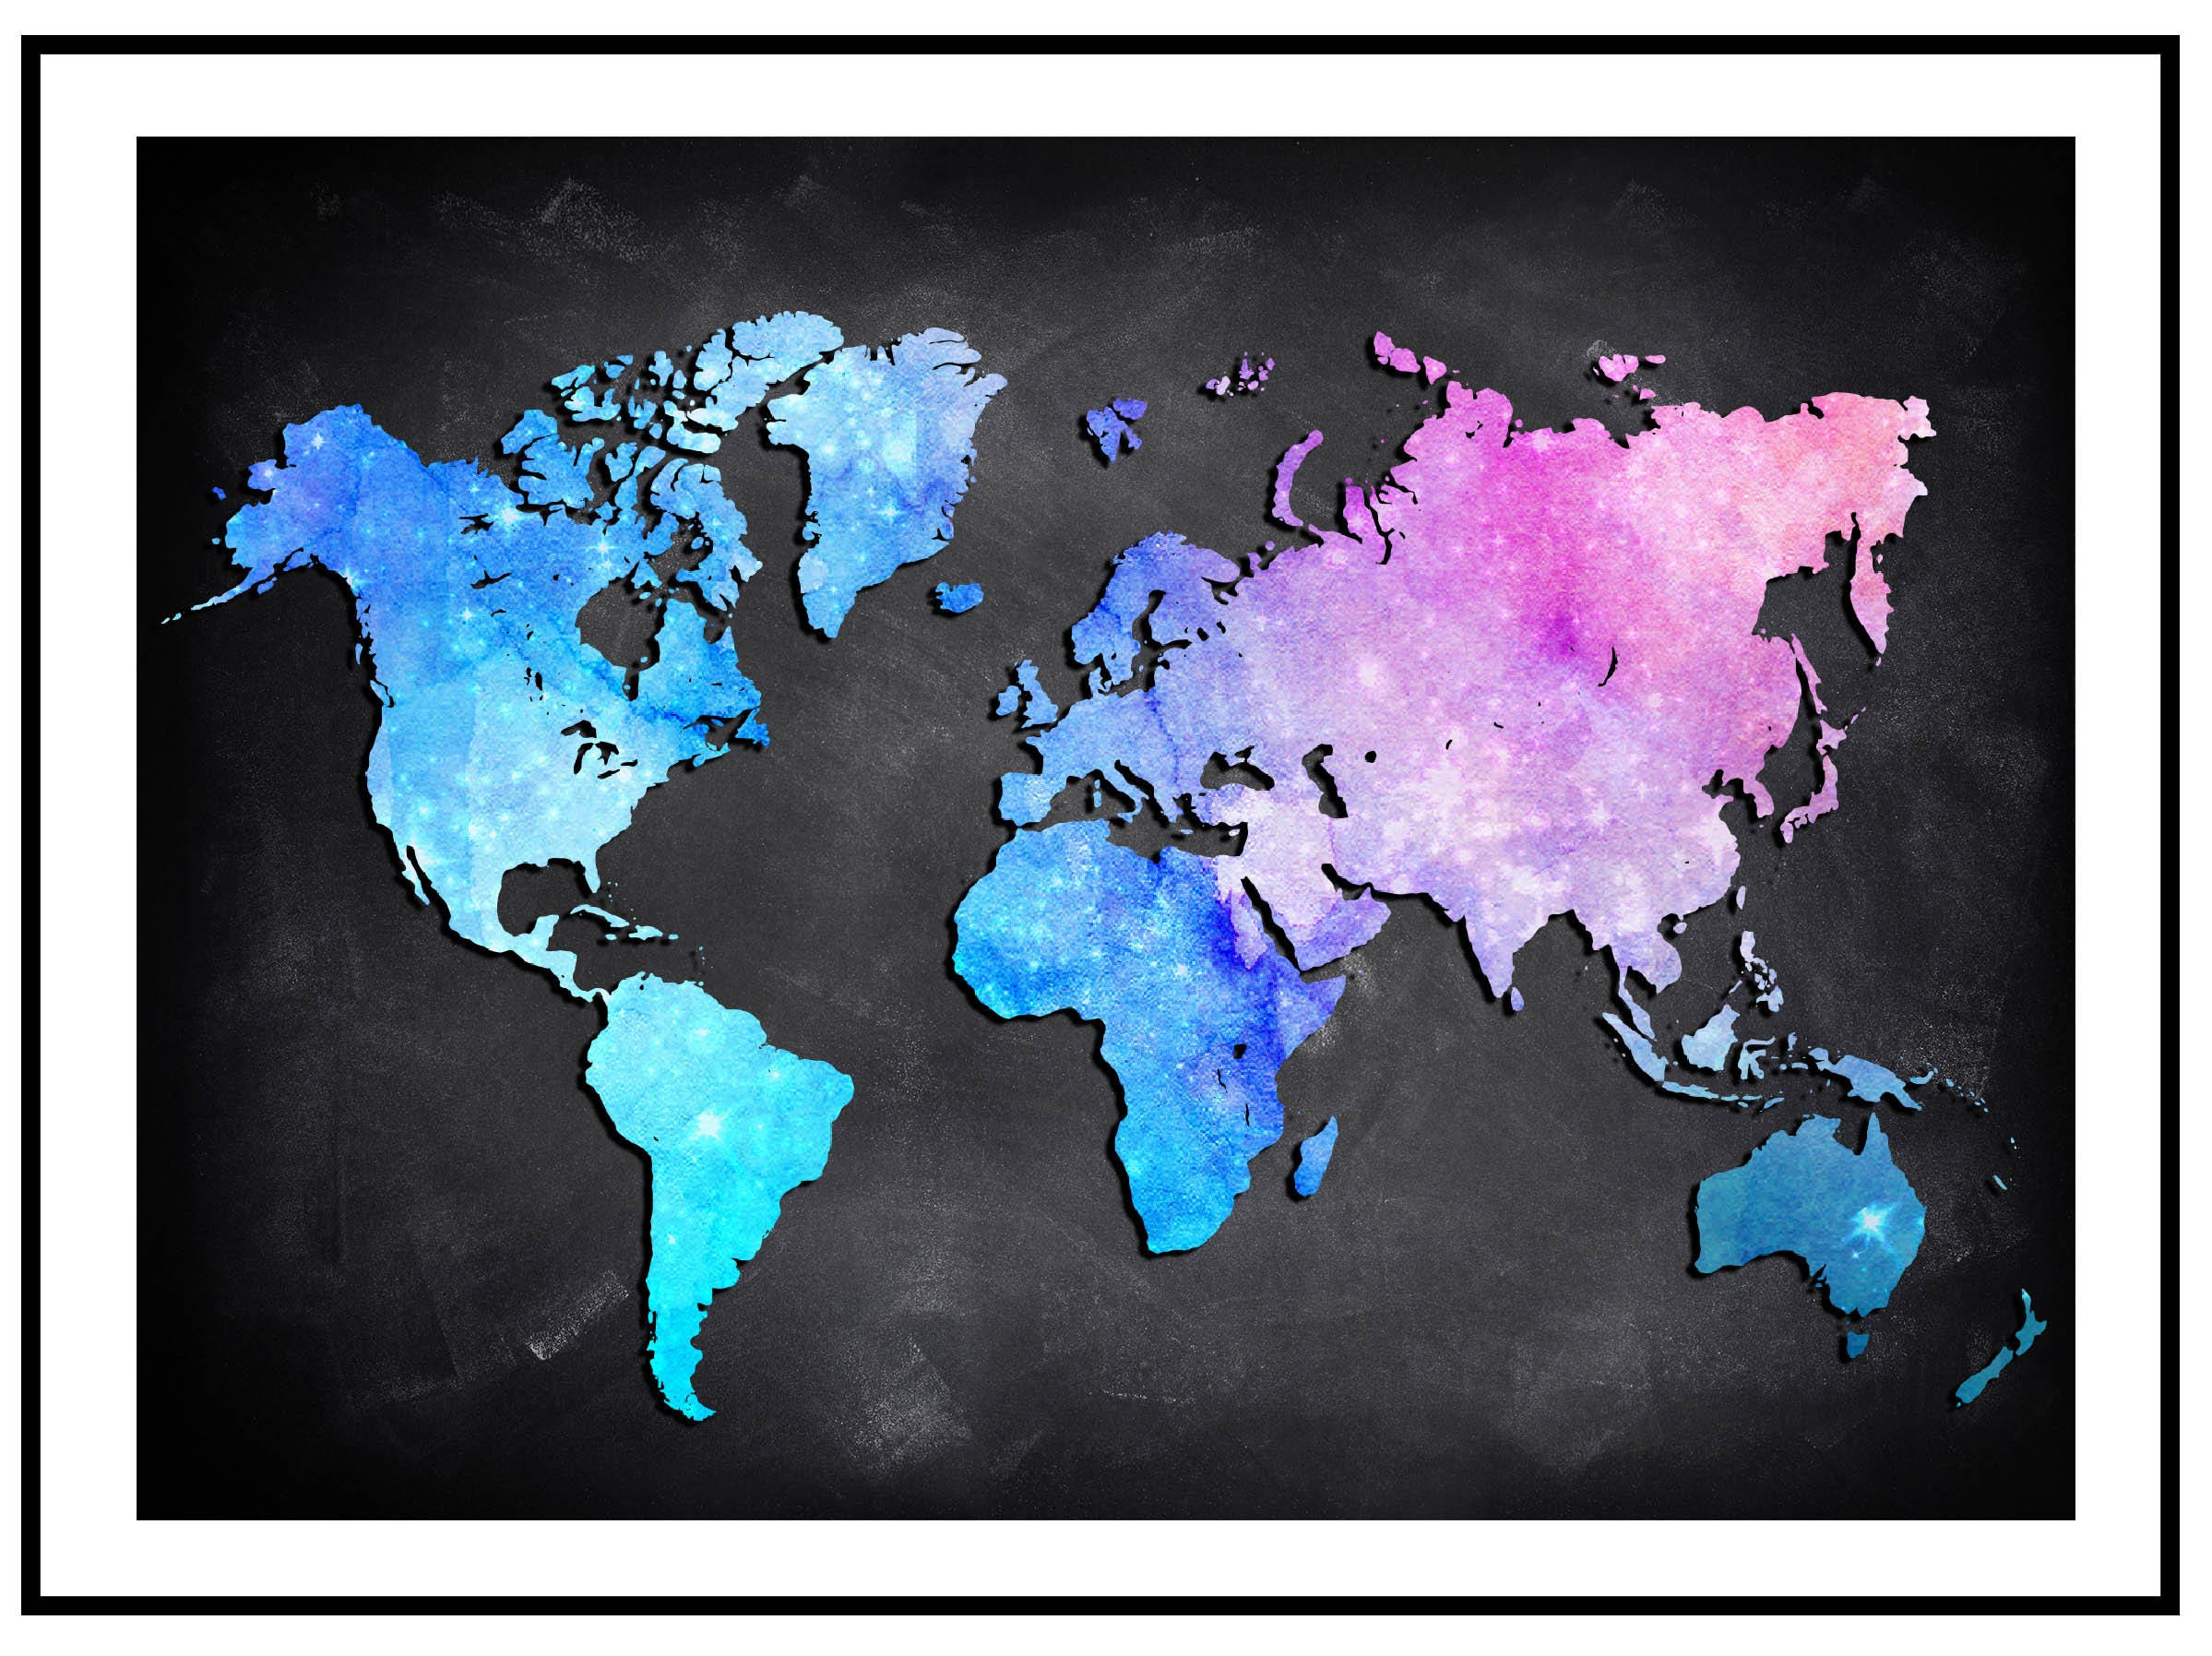 Colorful watercolor world map poster or canvas world map wall art colorful watercolor world map poster or canvas world map wall art detailed print push gumiabroncs Images